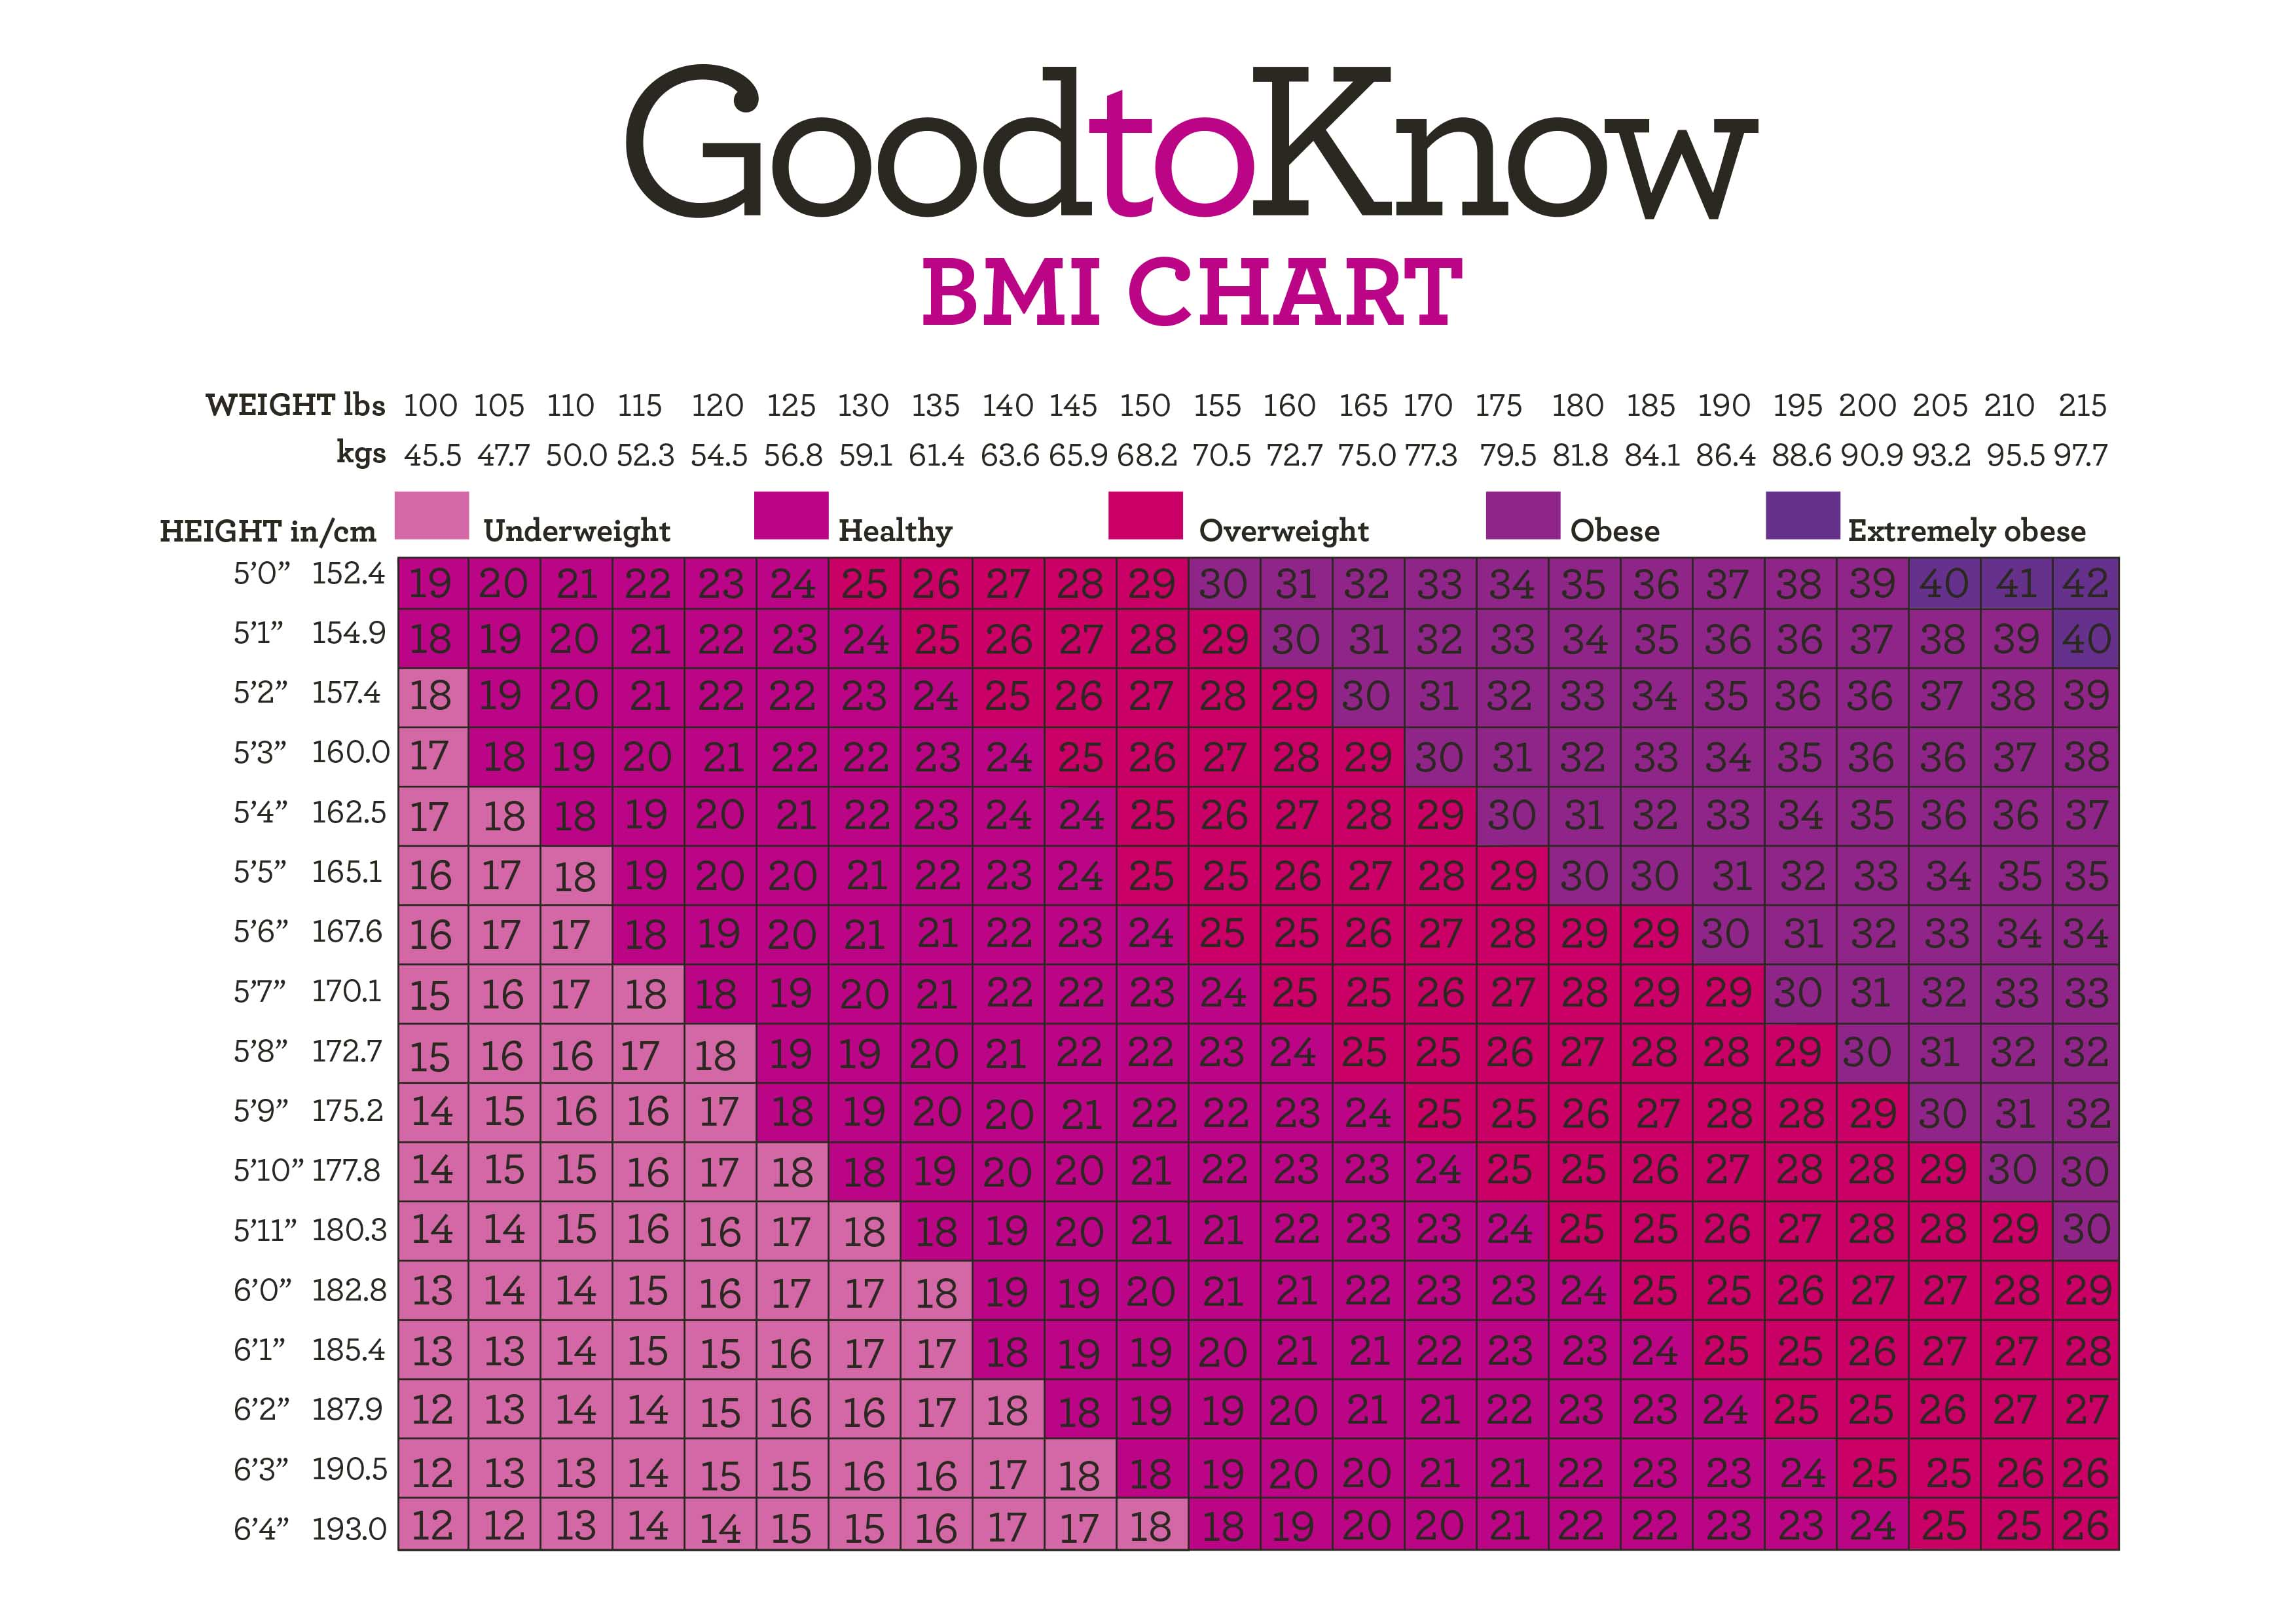 Bmi calculator try our handy bmi chart goodtoknow download your free bmi chart now nvjuhfo Image collections